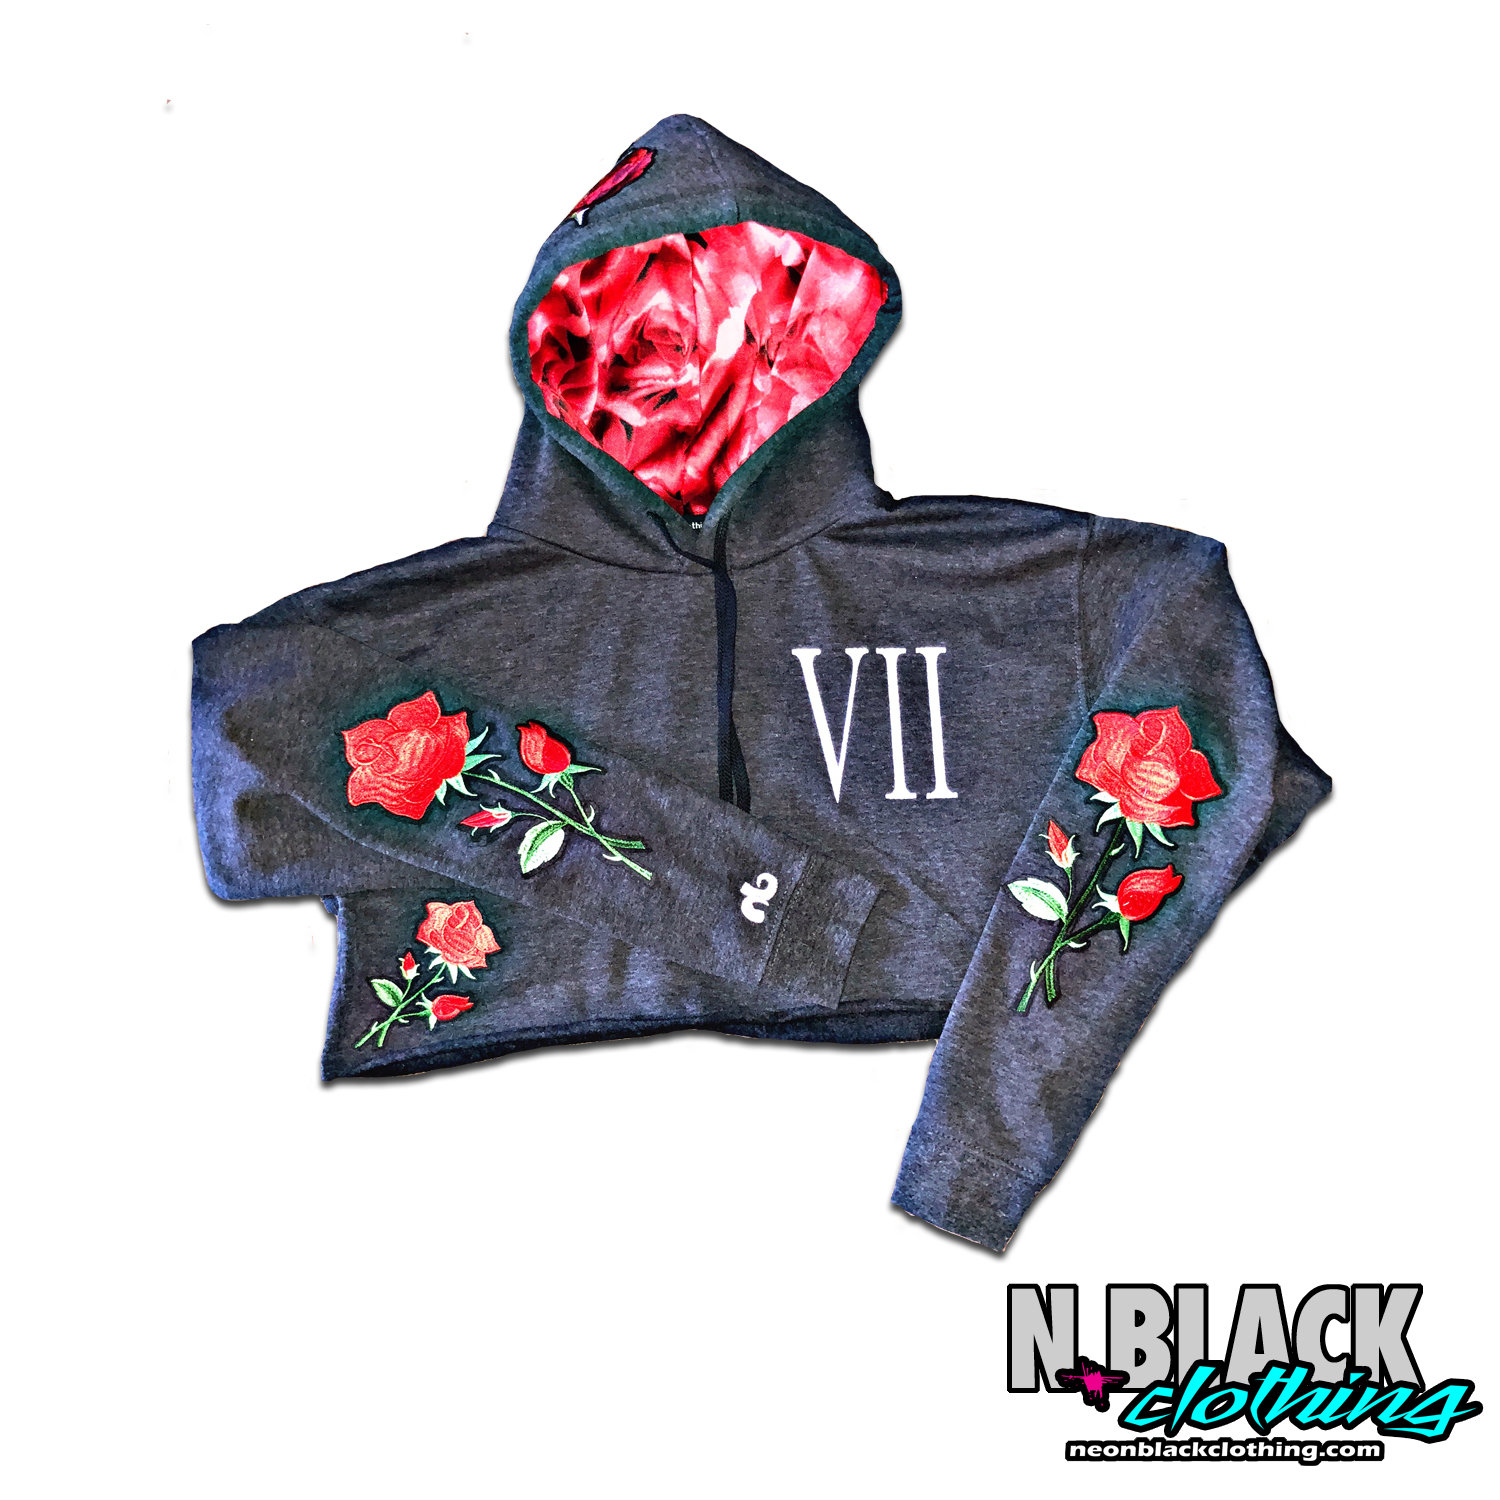 VII Years of Neon - Cropped Charcoal Roses